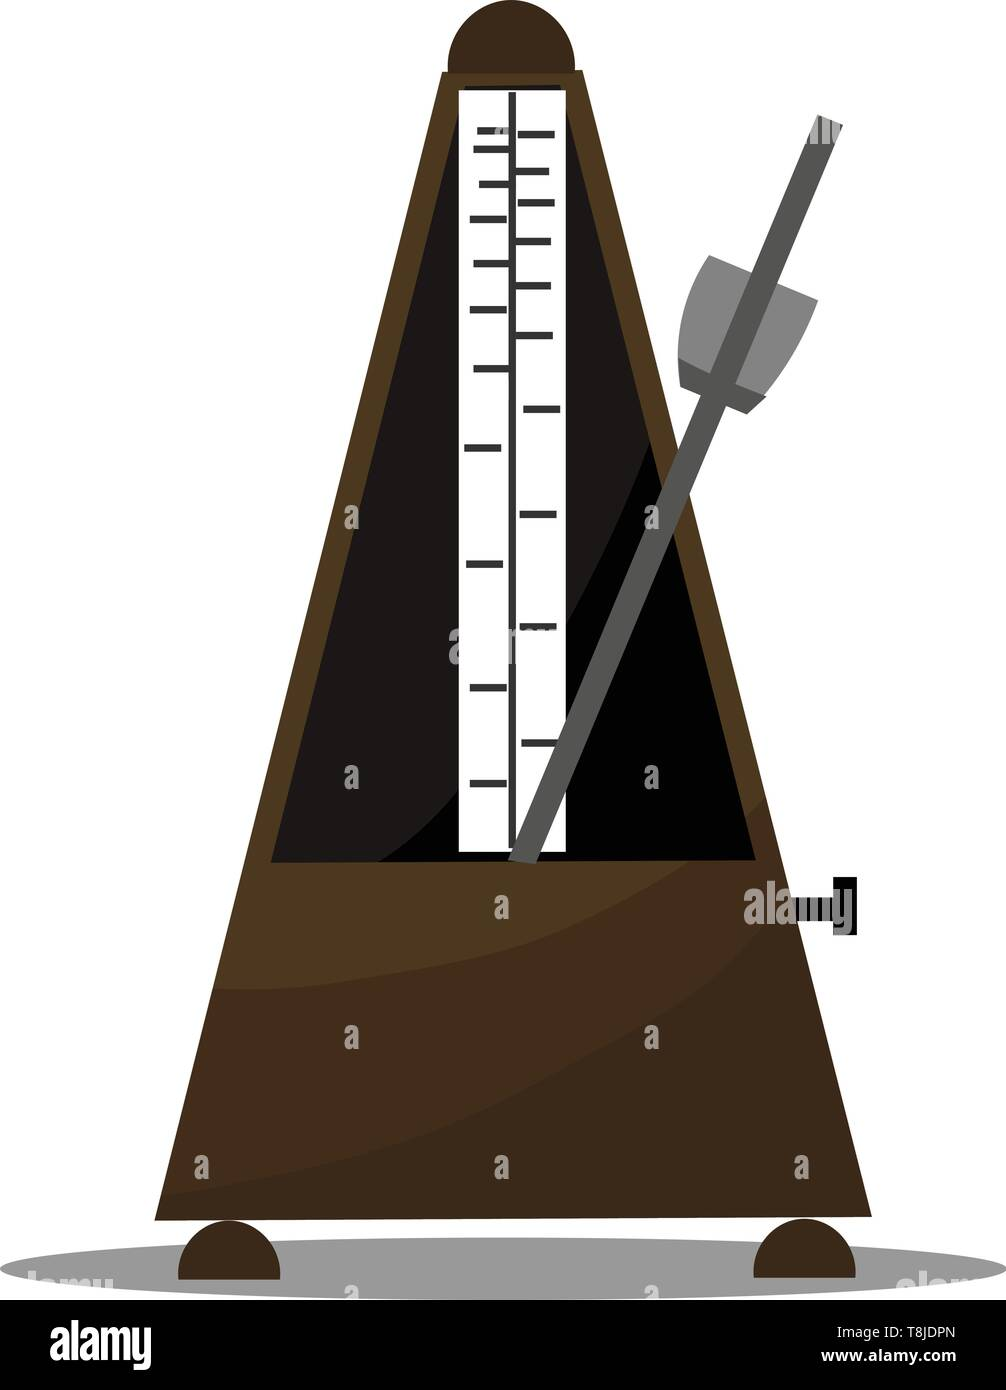 A metronome device that produces sound at regular interval